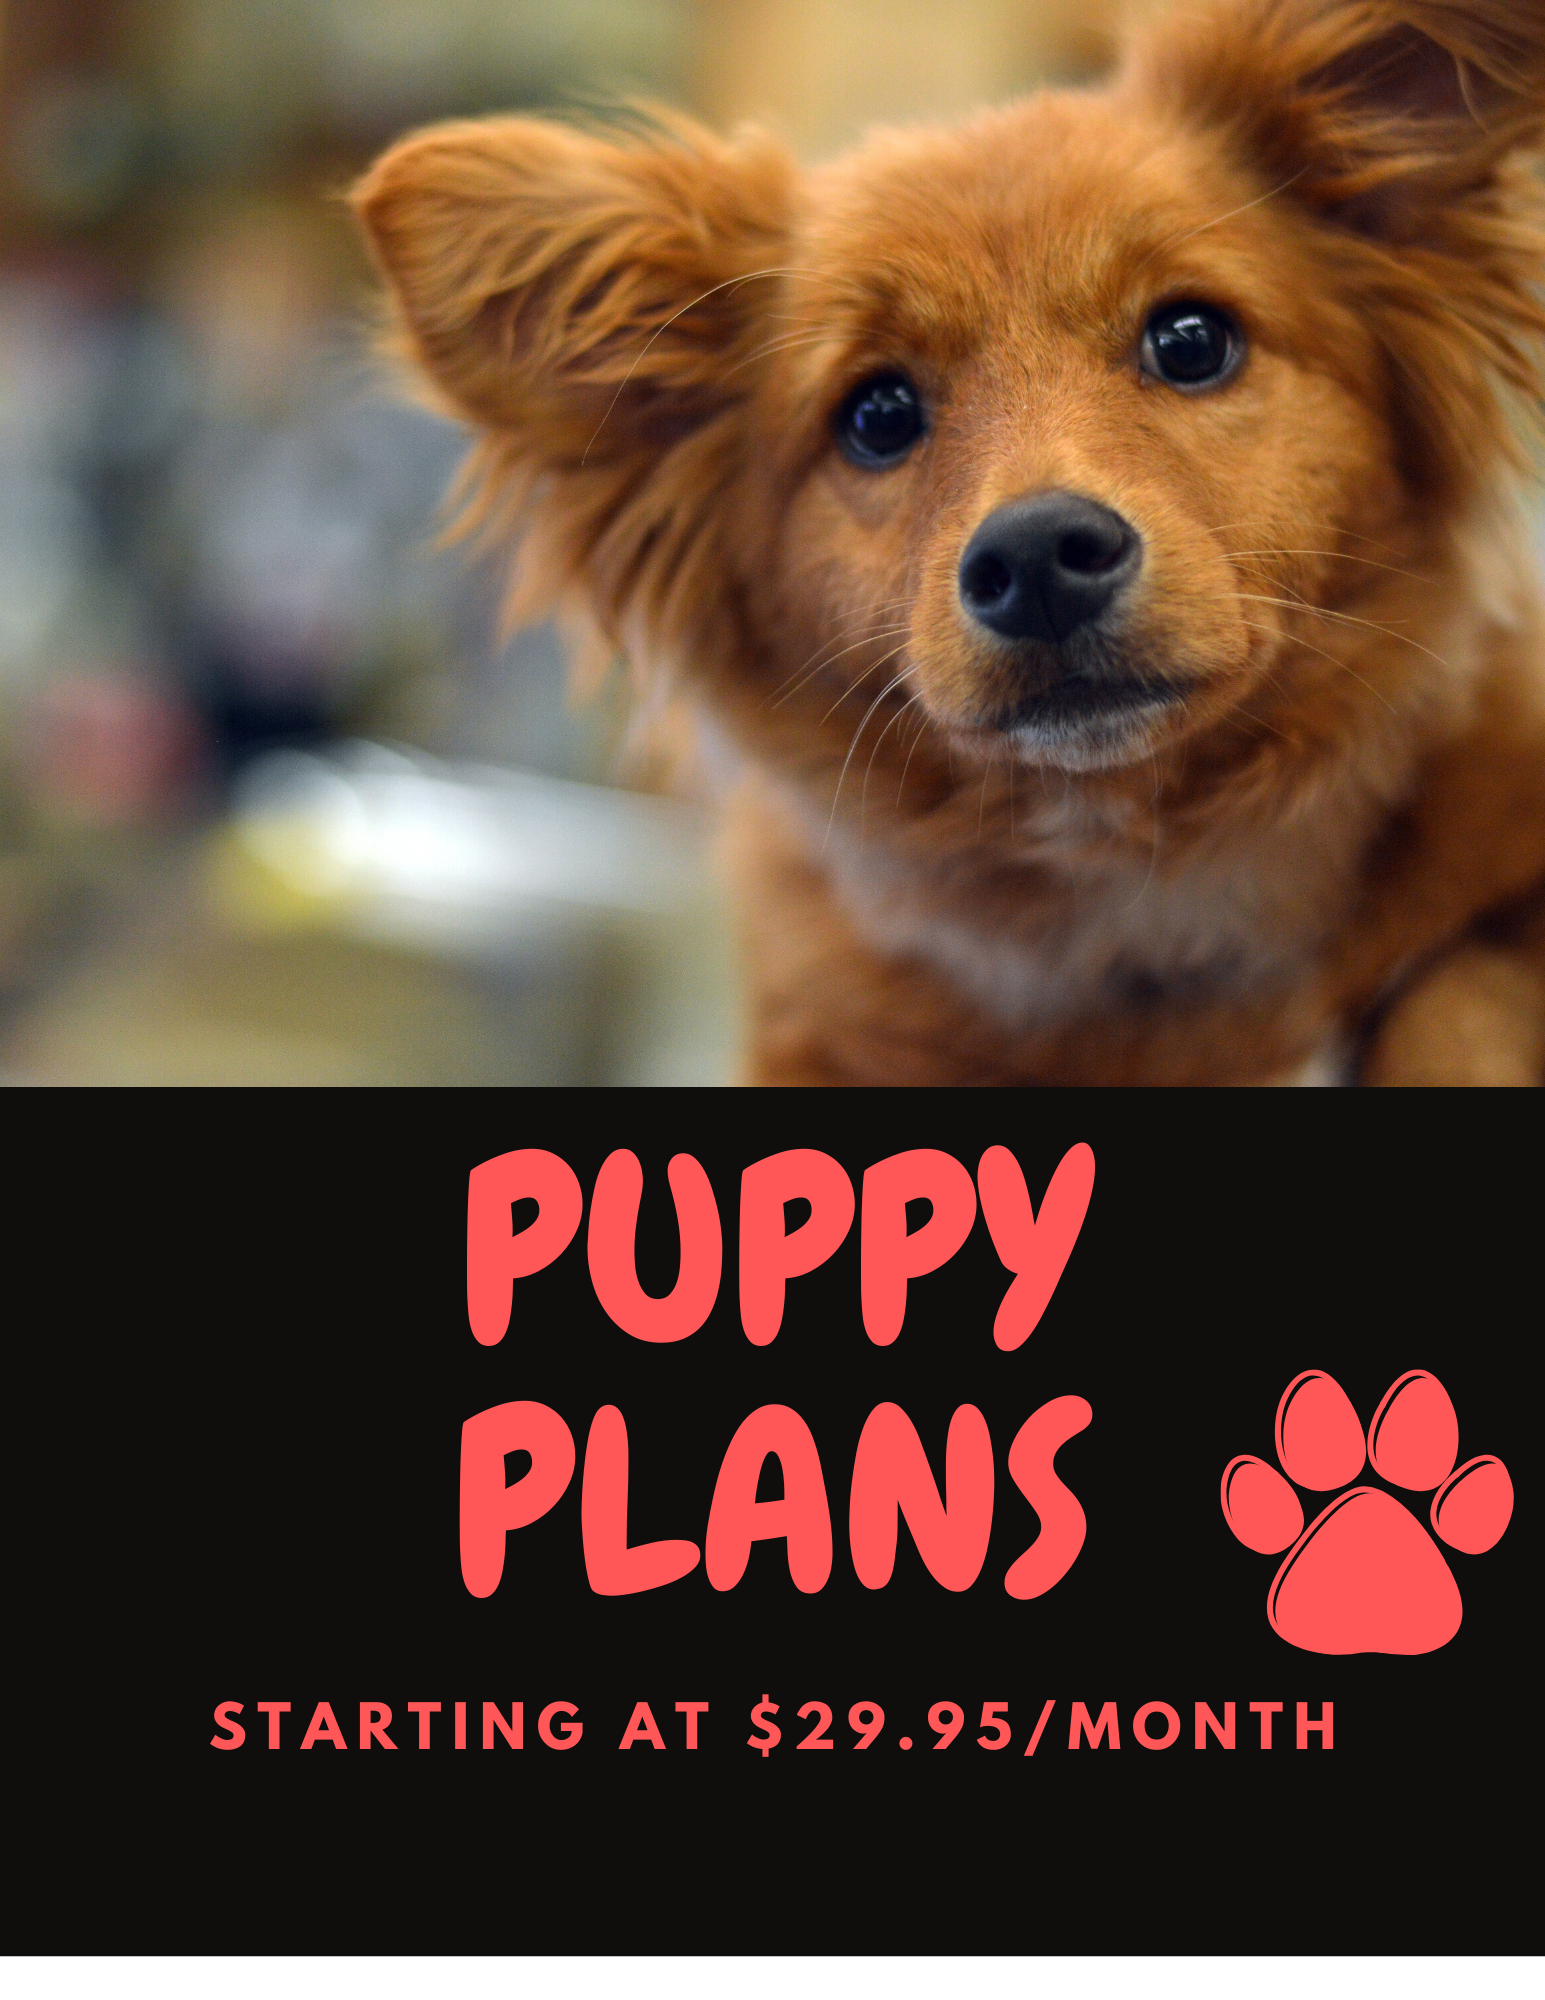 PUPPY PLANS WEBSITE